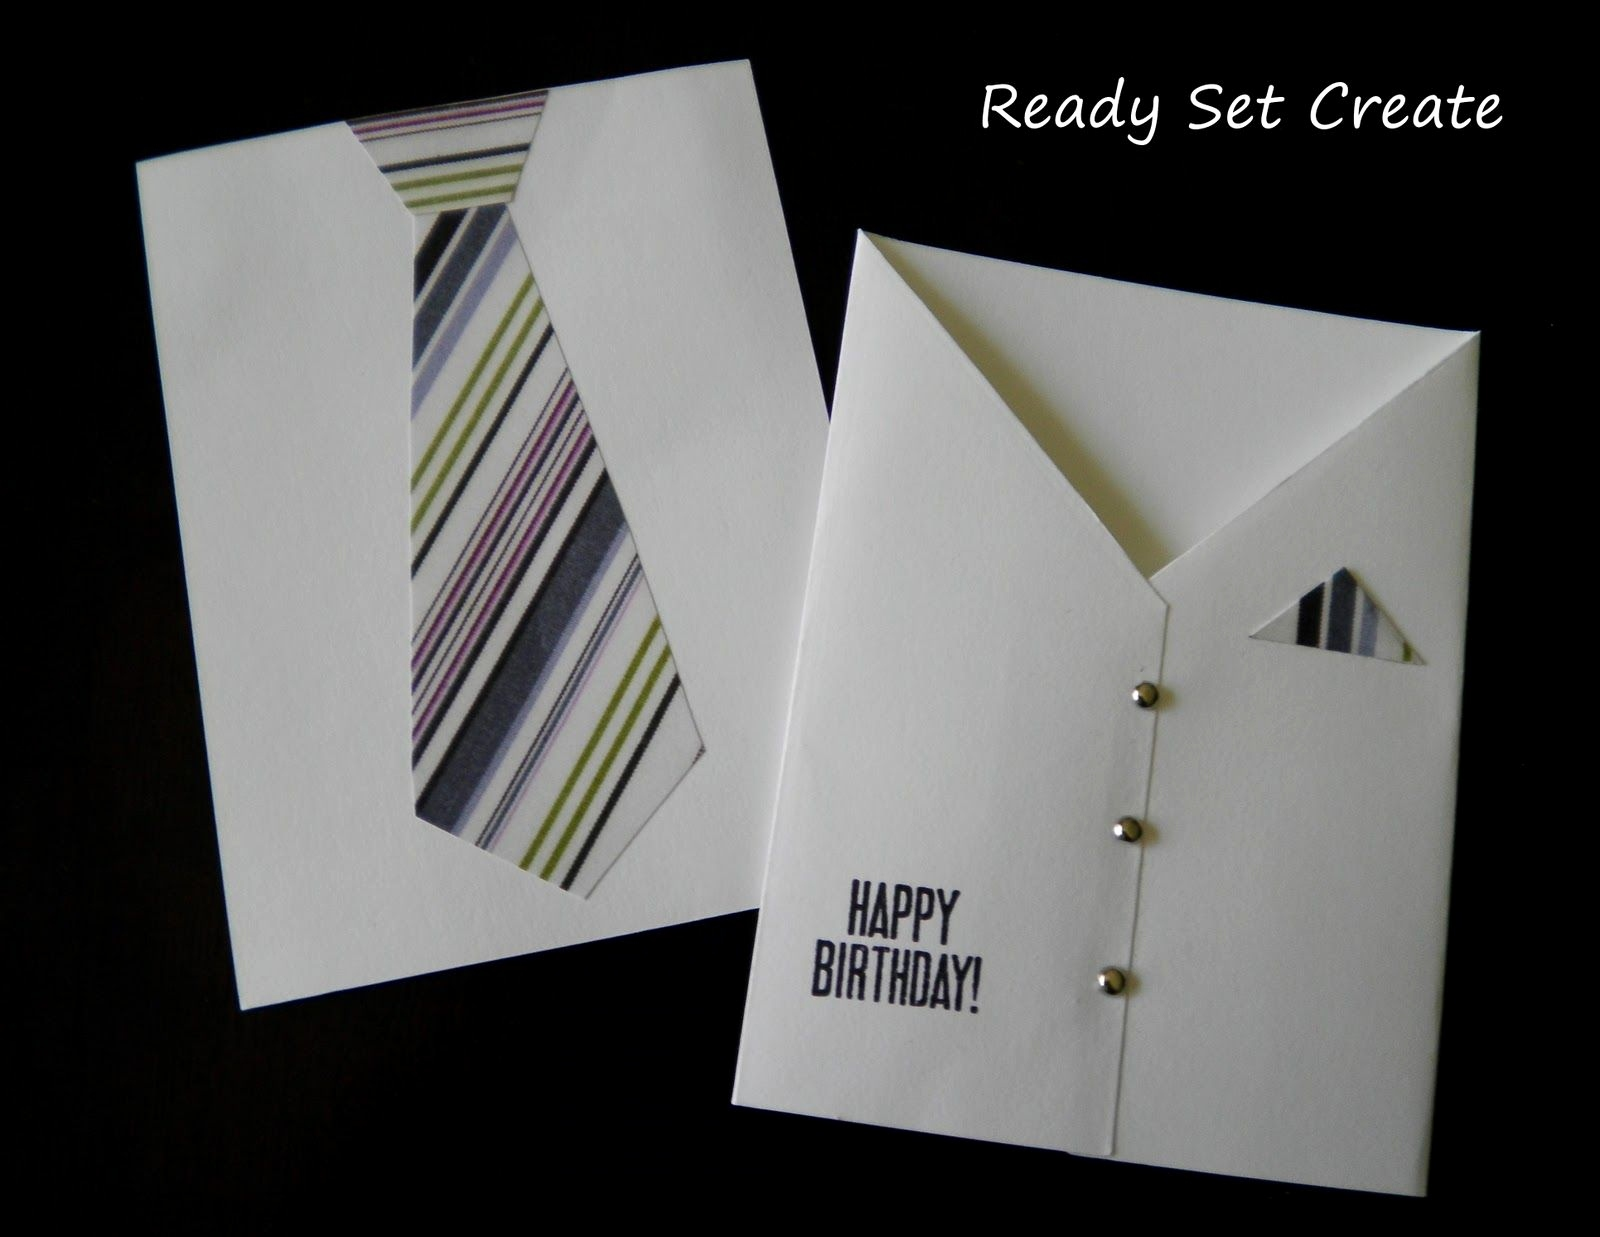 handmade 30th birthday card ideas ; handmade-30th-birthday-card-ideas-fresh-diy-birthday-card-ideas-of-handmade-30th-birthday-card-ideas